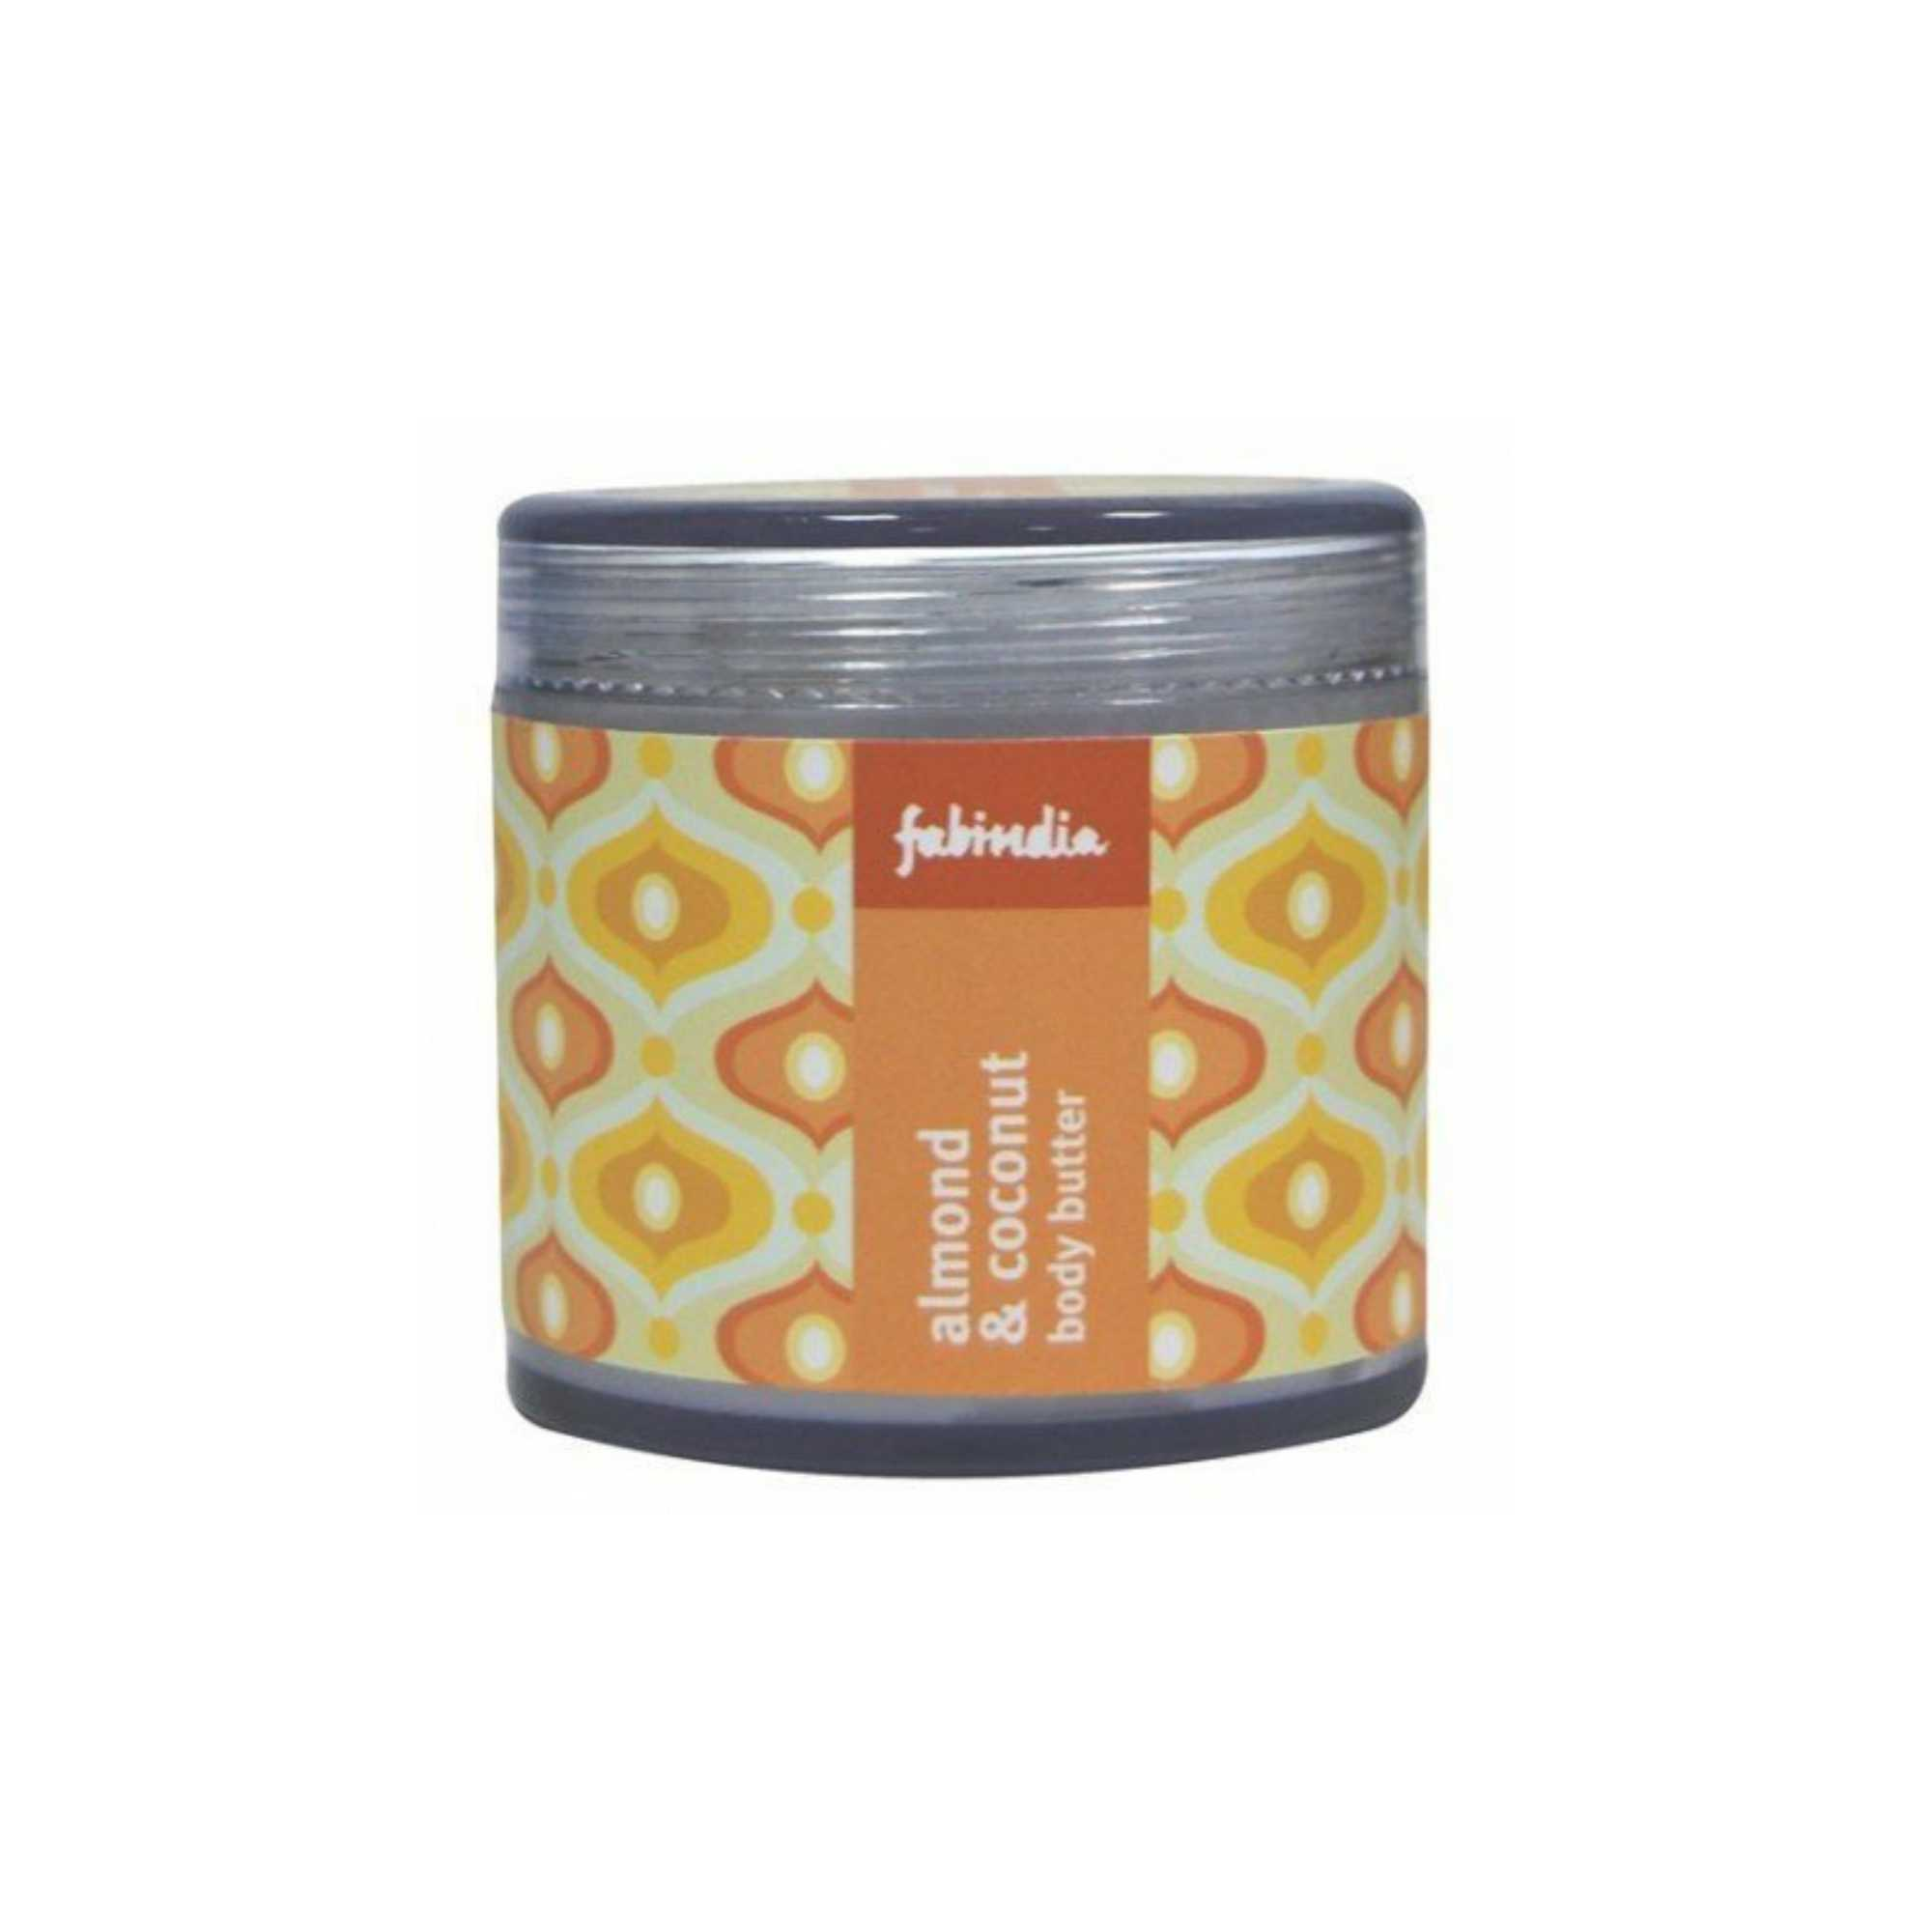 Fabindia Almond And Coconut Body Butter